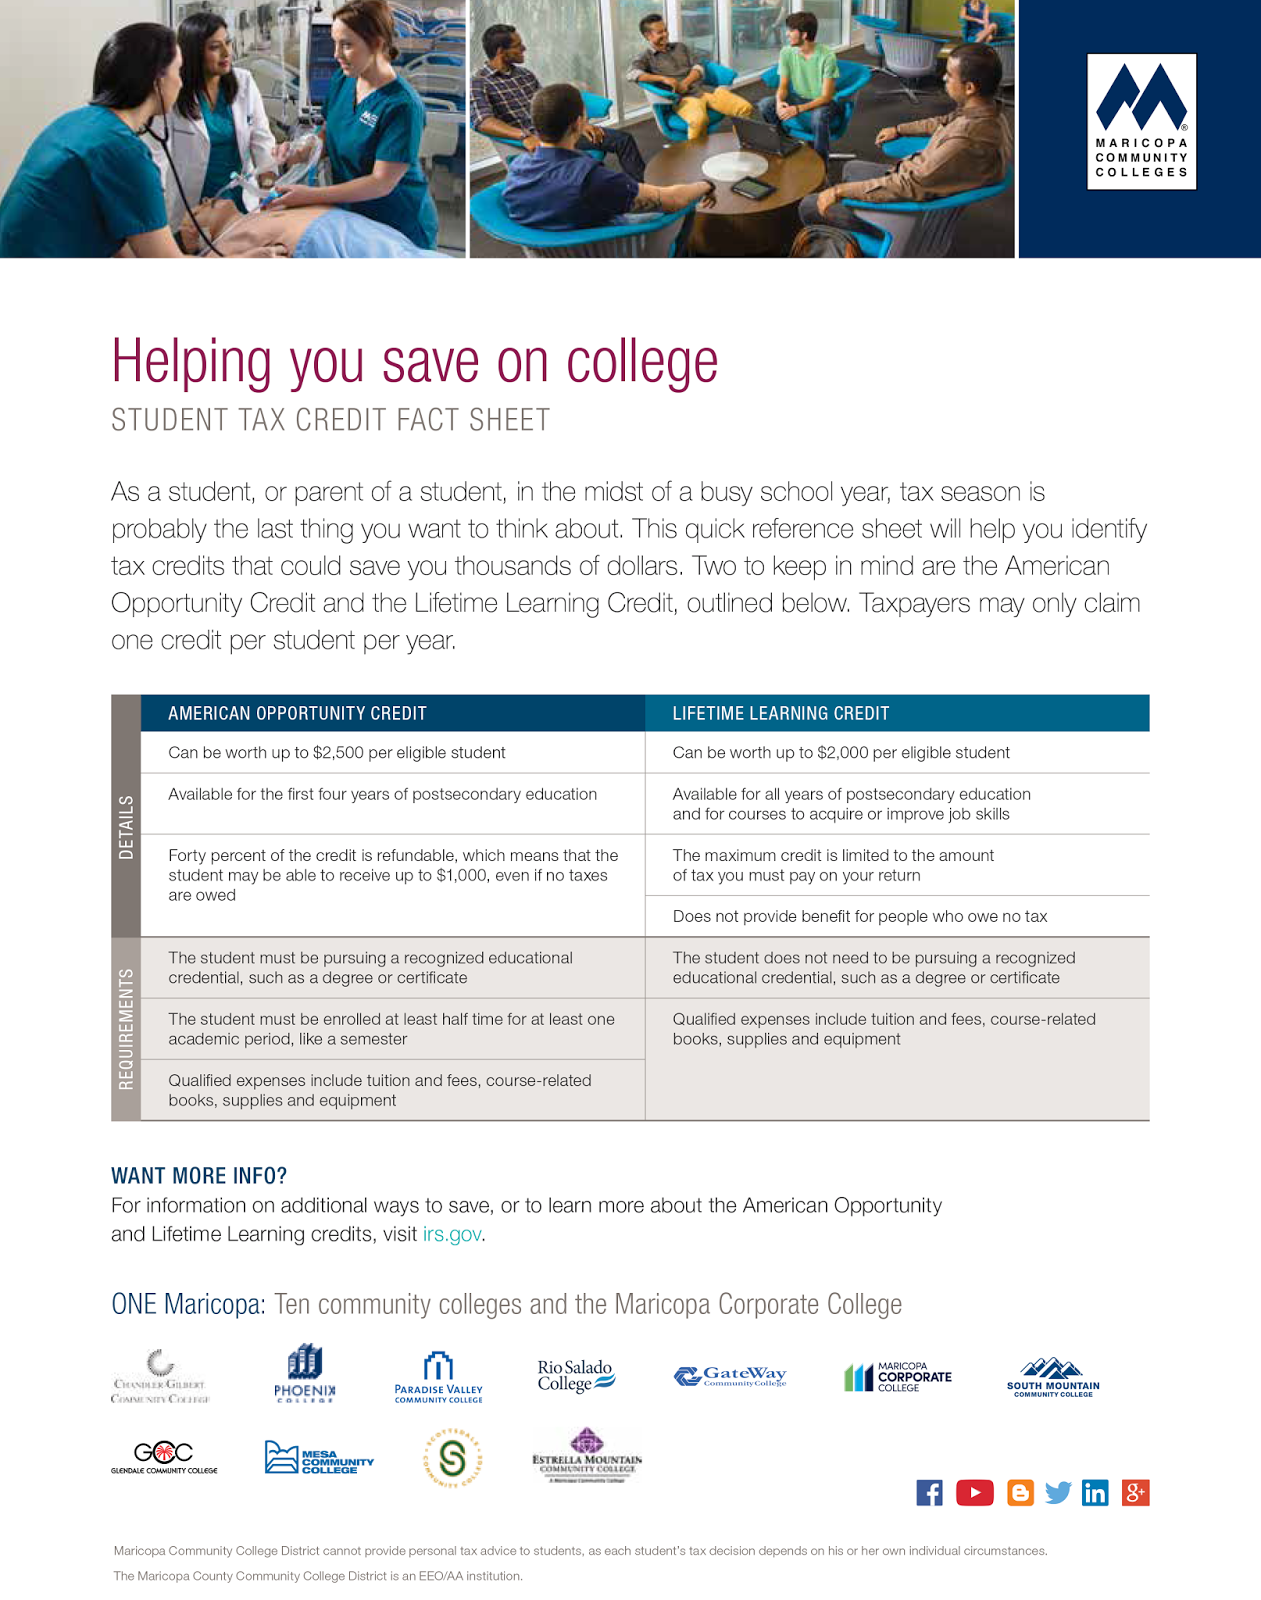 Helping you save on college!  As a student, or parent of a student, in the midst of a busy school year, tax season is probably the last thing you want to think about. This quick reference sheet will help you identify tax credits that could save you thousands of dollars. Two to keep in mind are the American Opportunity Credit and the Lifetime Learning Credit, outlined below. Taxpayers may only claim one credit per student per year.  AMERICAN OPPORTUNITY CREDIT LIFETIME LEARNING CREDIT AMERICAN OPPORTUNITY CREDIT DETAILS: Can be worth up to $2,500 per eligible student. Available for the first four years of postsecondary education. Forty percent of the credit is refundable, which means that the student may be able to receive up to $1,000, even if no taxes are owed.  AMERICAN OPPORTUNITY CREDIT REQUIREMENTS The student must be enrolled at least half time for at least one academic period, like a semester. Qualified expenses include tuition and fees, course-related books, supplies and equipment. LIFETIME LEARNING CREDIT DETAILS: Can be worth up to $2,000 per eligible student. Available for all years of postsecondary education and for courses to acquire or improve job skills. The maximum credit is limited to the amount of tax you must pay on your return. Does not provide benefit for people who owe no tax.   The student does not need to be pursuing a recognized educational credential, such as a degree or certificate. Qualified expenses include tuition and fees, course-related books, supplies and equipment.   WANT MORE INFO? For information on additional ways to save, or to learn more about the American Opportunity and Lifetime Learning credits, visit irs.gov.  ONE Maricopa: Ten community colleges and the Maricopa Corporate College  Maricopa Community College District cannot provide personal tax advice to students, as each student's tax decision depends on his or her own individual circumstances. The Maricopa County Community College District is an EEO/AA institution.